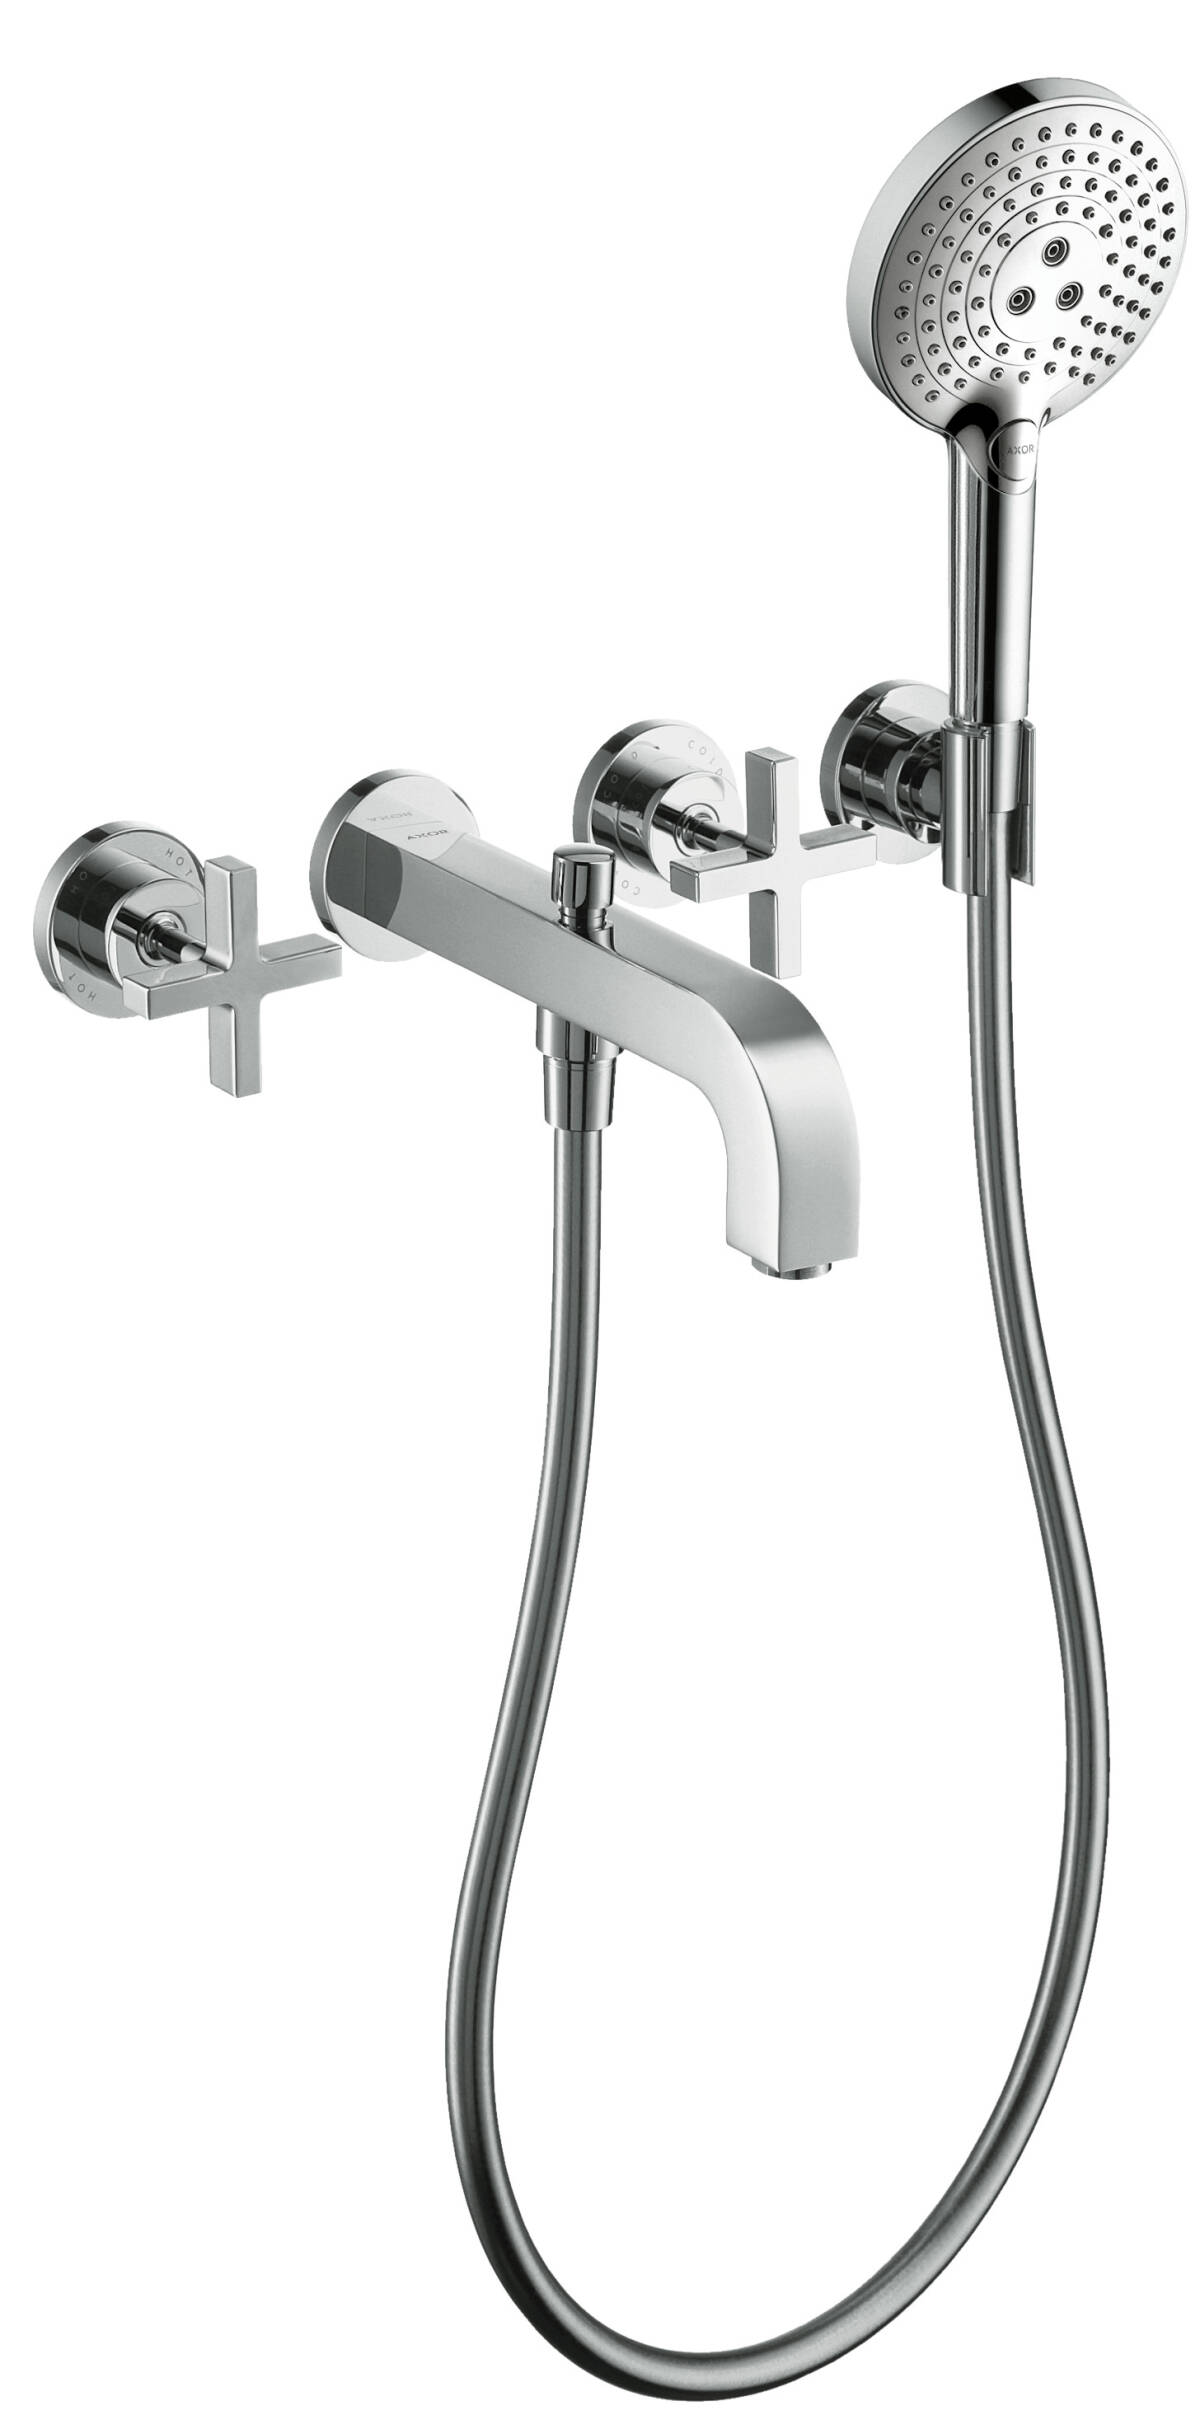 3-hole bath mixer for concealed installation wall-mounted with cross handles and escutcheons, Brushed Brass, 39447950